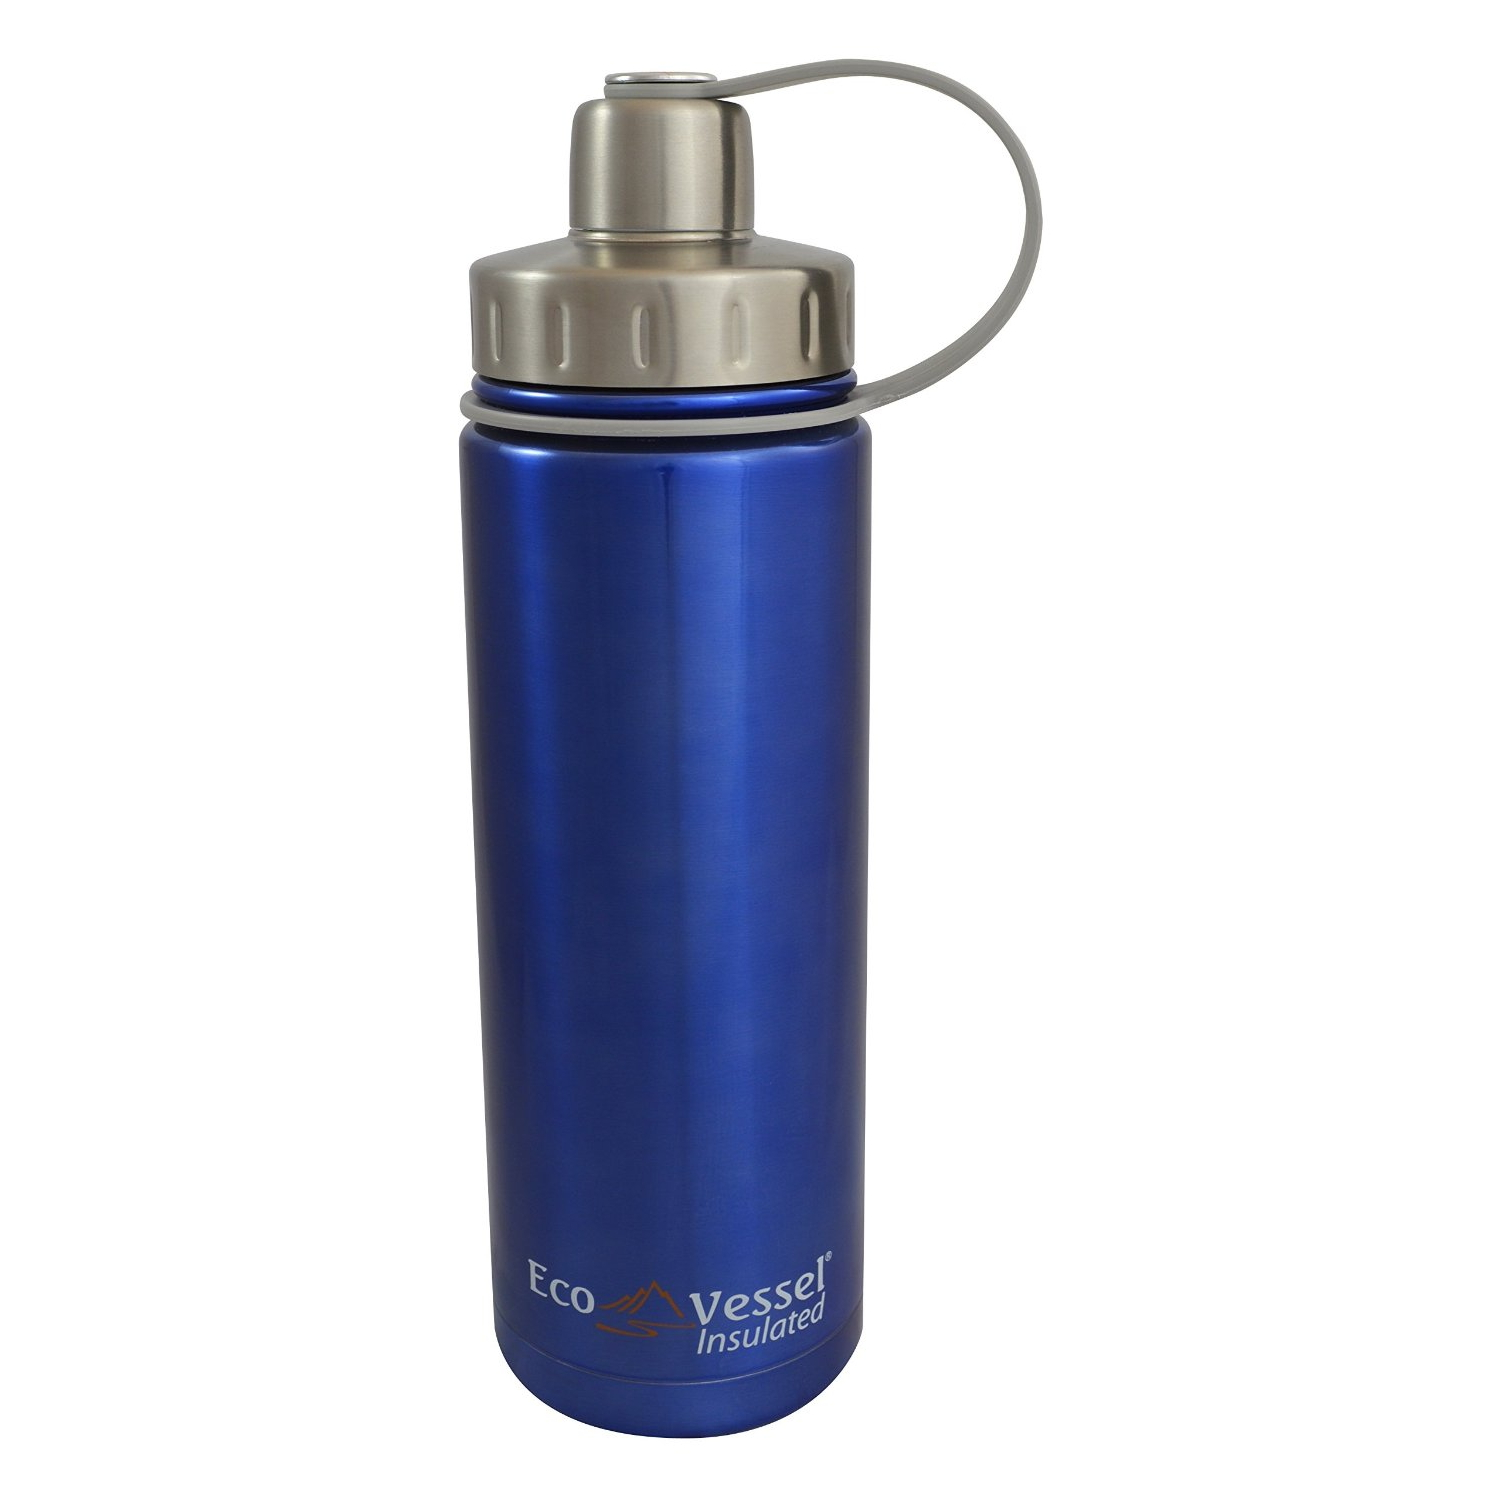 Eco Vessel Boulder TriMax Triple Insulated Blue Glow 20 Ounce Water Bottle with 2-Piece Screw Cap and Strainer